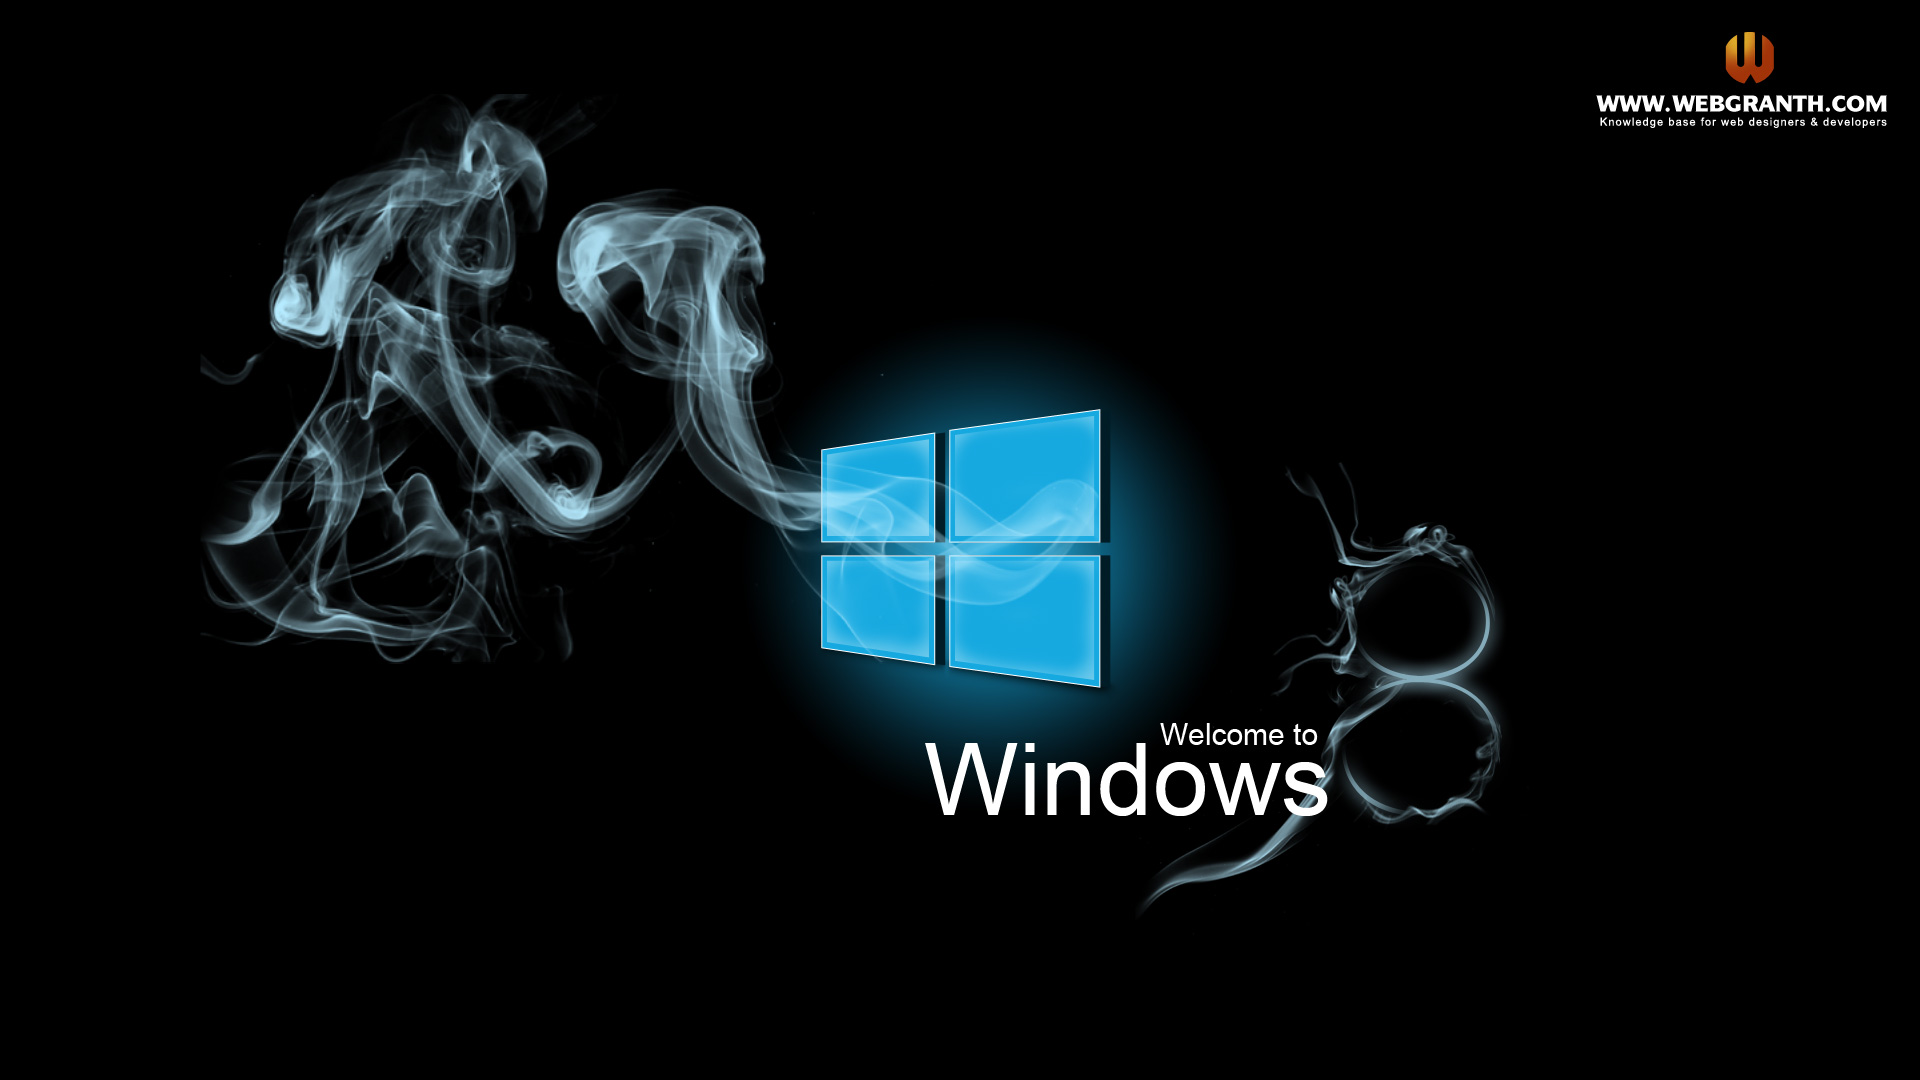 Live Wallpaper For Windows 8